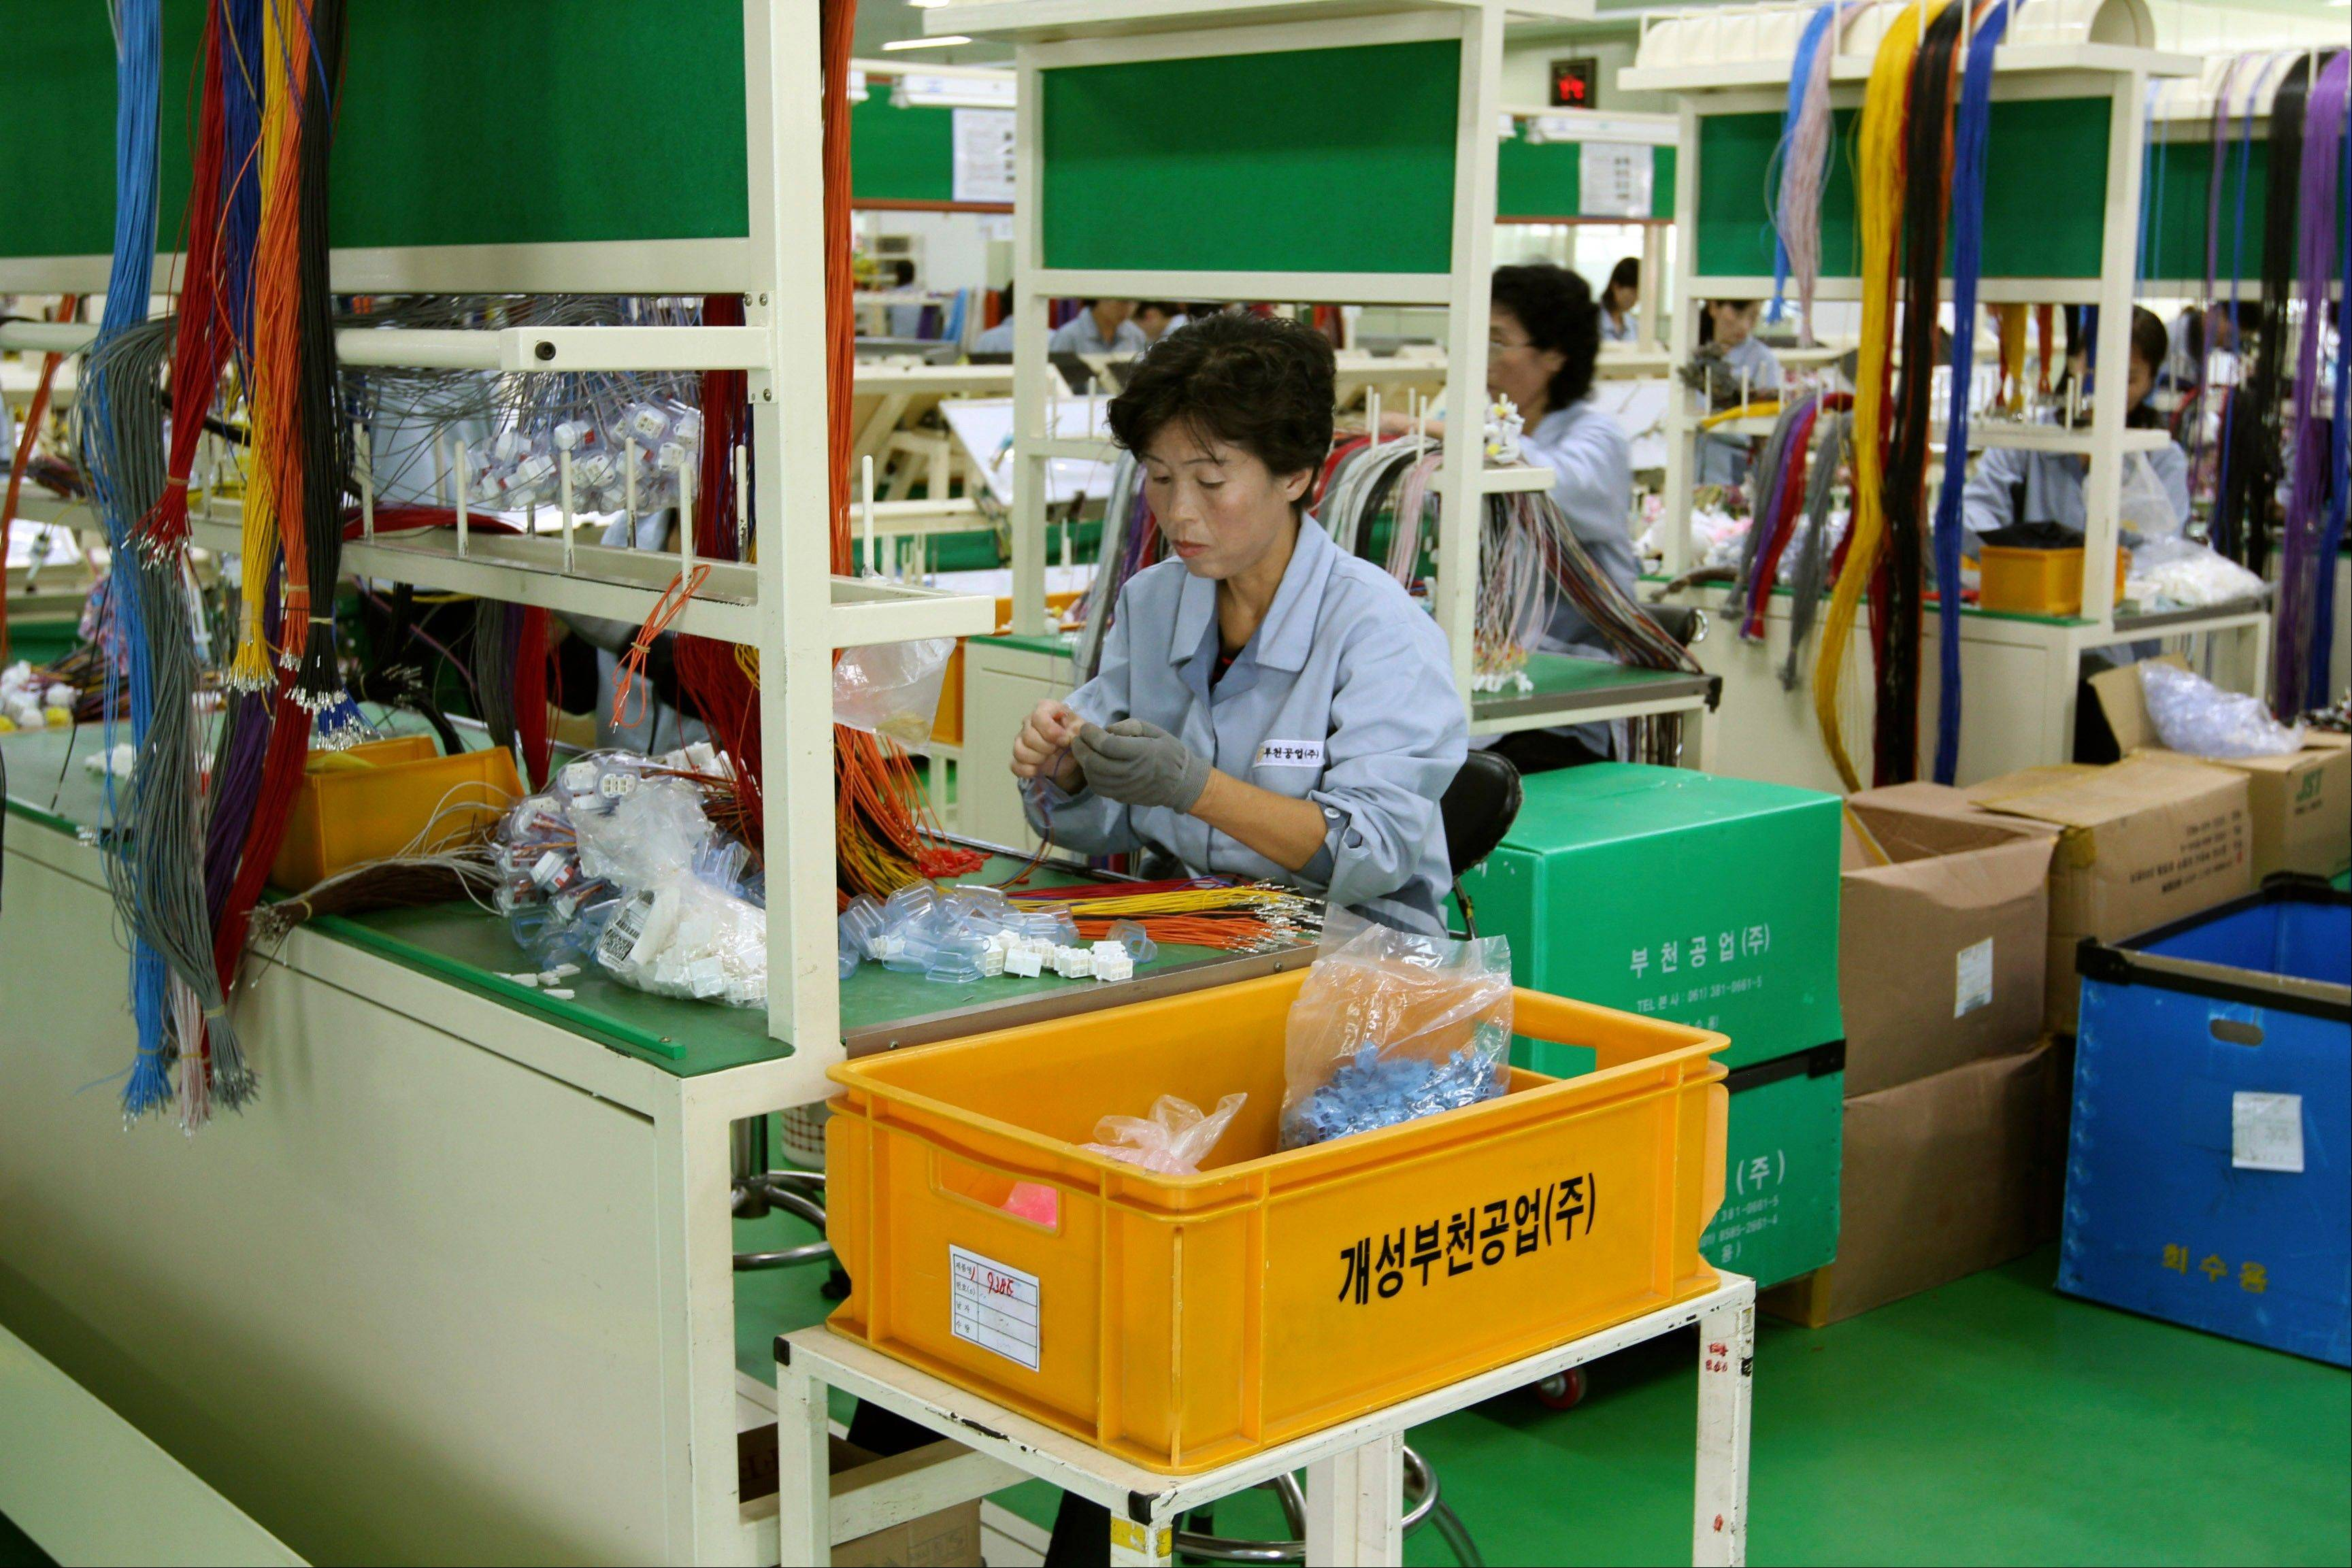 In this September 2012 photo, a North Korean worker handles wires at a South Korean-run factory inside the Kaesong industrial complex in Kaesong, North Korea. On Wednesday, April 3, 2013, North Korea refused entry to South Koreans trying to cross the Demilitarized Zone to get to their jobs managing factories in the North Korean city of Kaesong.